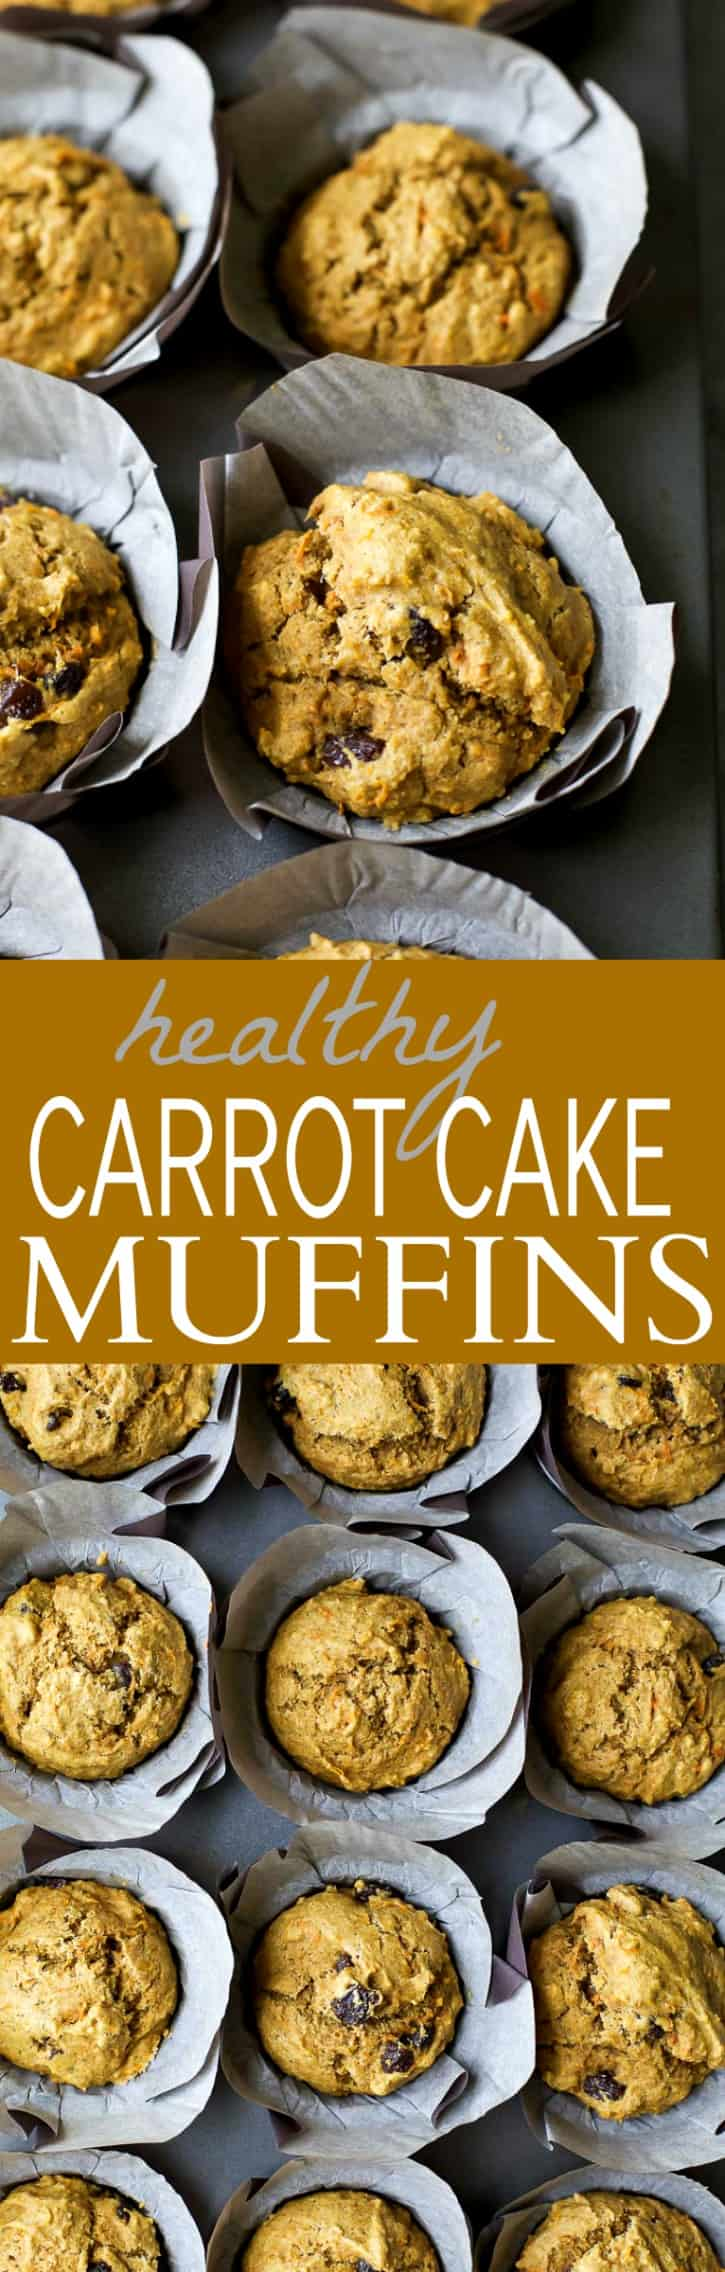 Recipe collage for Healthy Carrot Cake Muffins